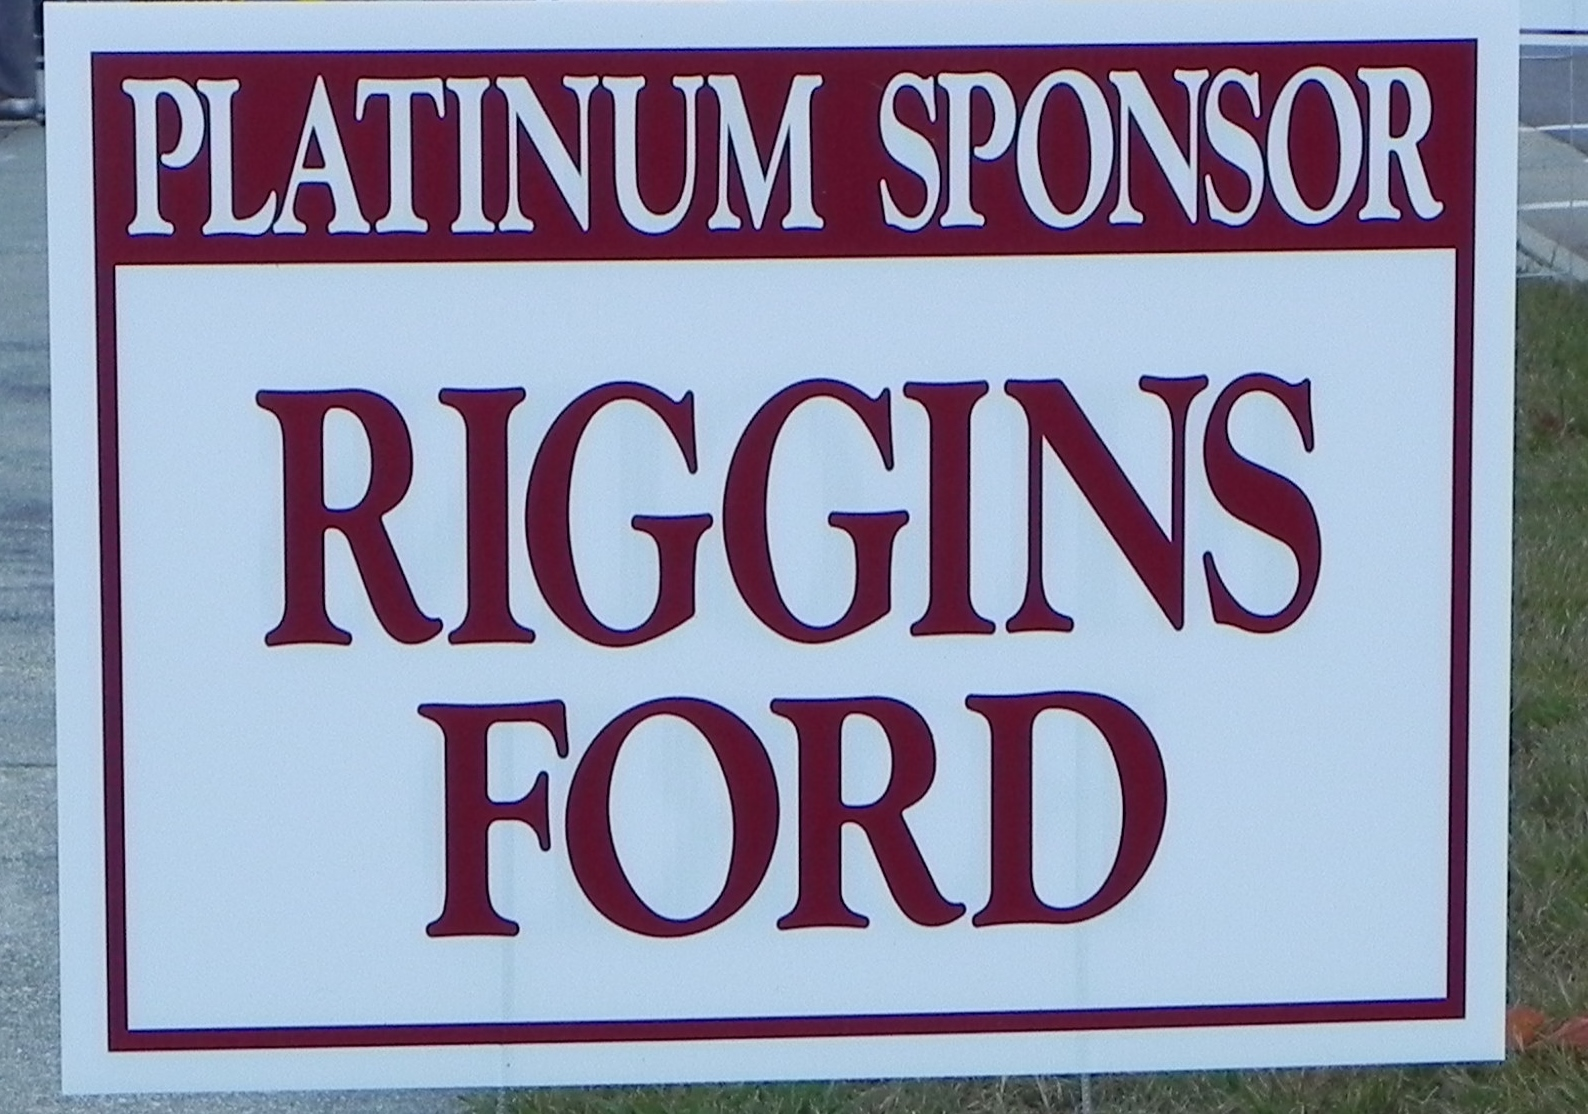 sign-platinum-riggins-ford.jpg